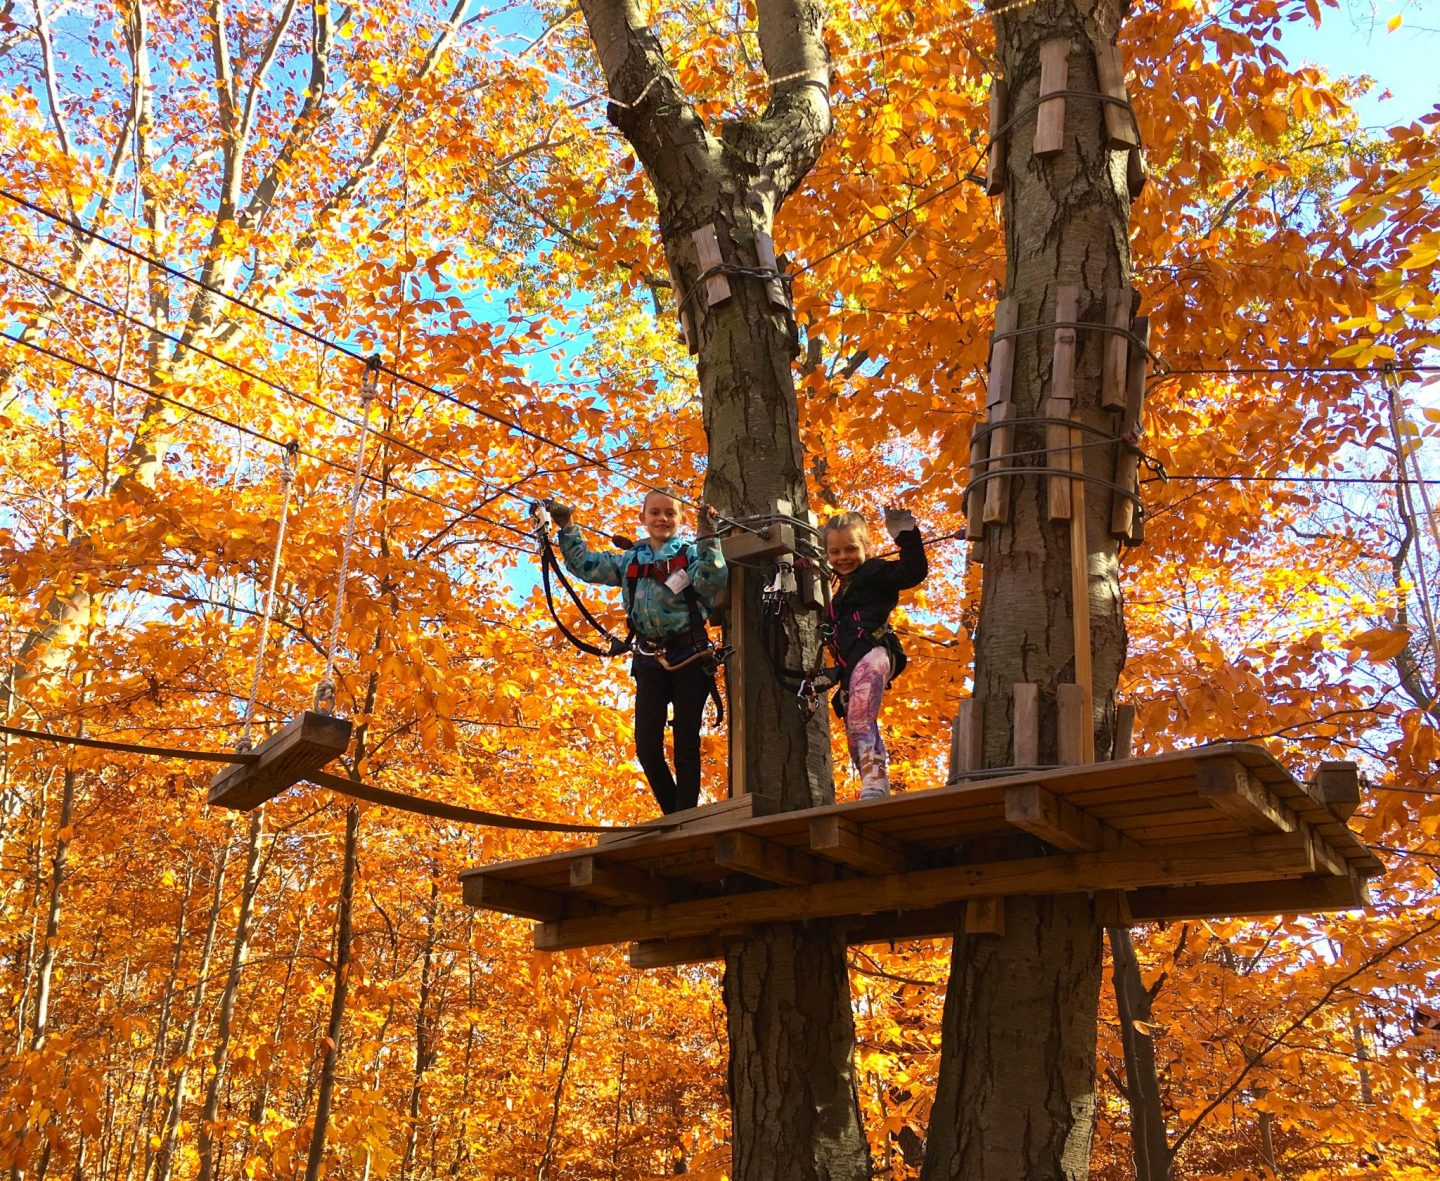 Zip Lining Anyone? Connecticut's Most Popular Obstacle Course